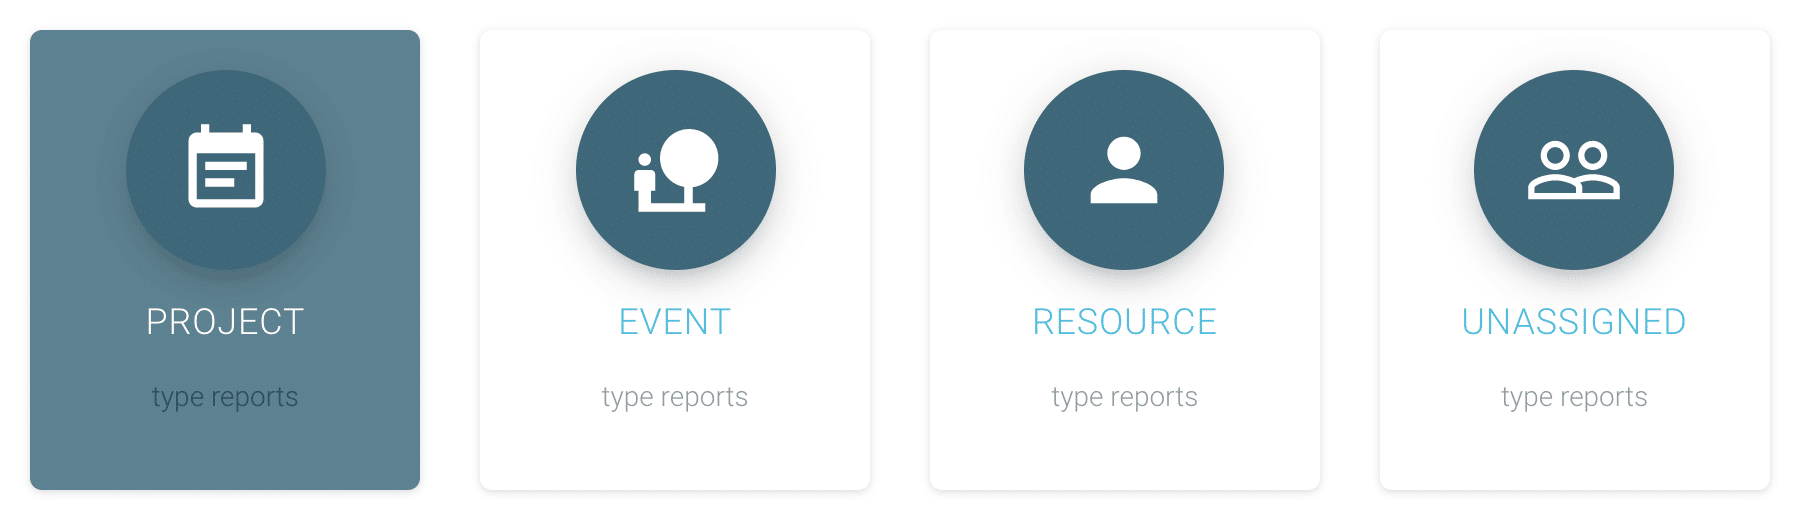 Project_and_Resource_Reports